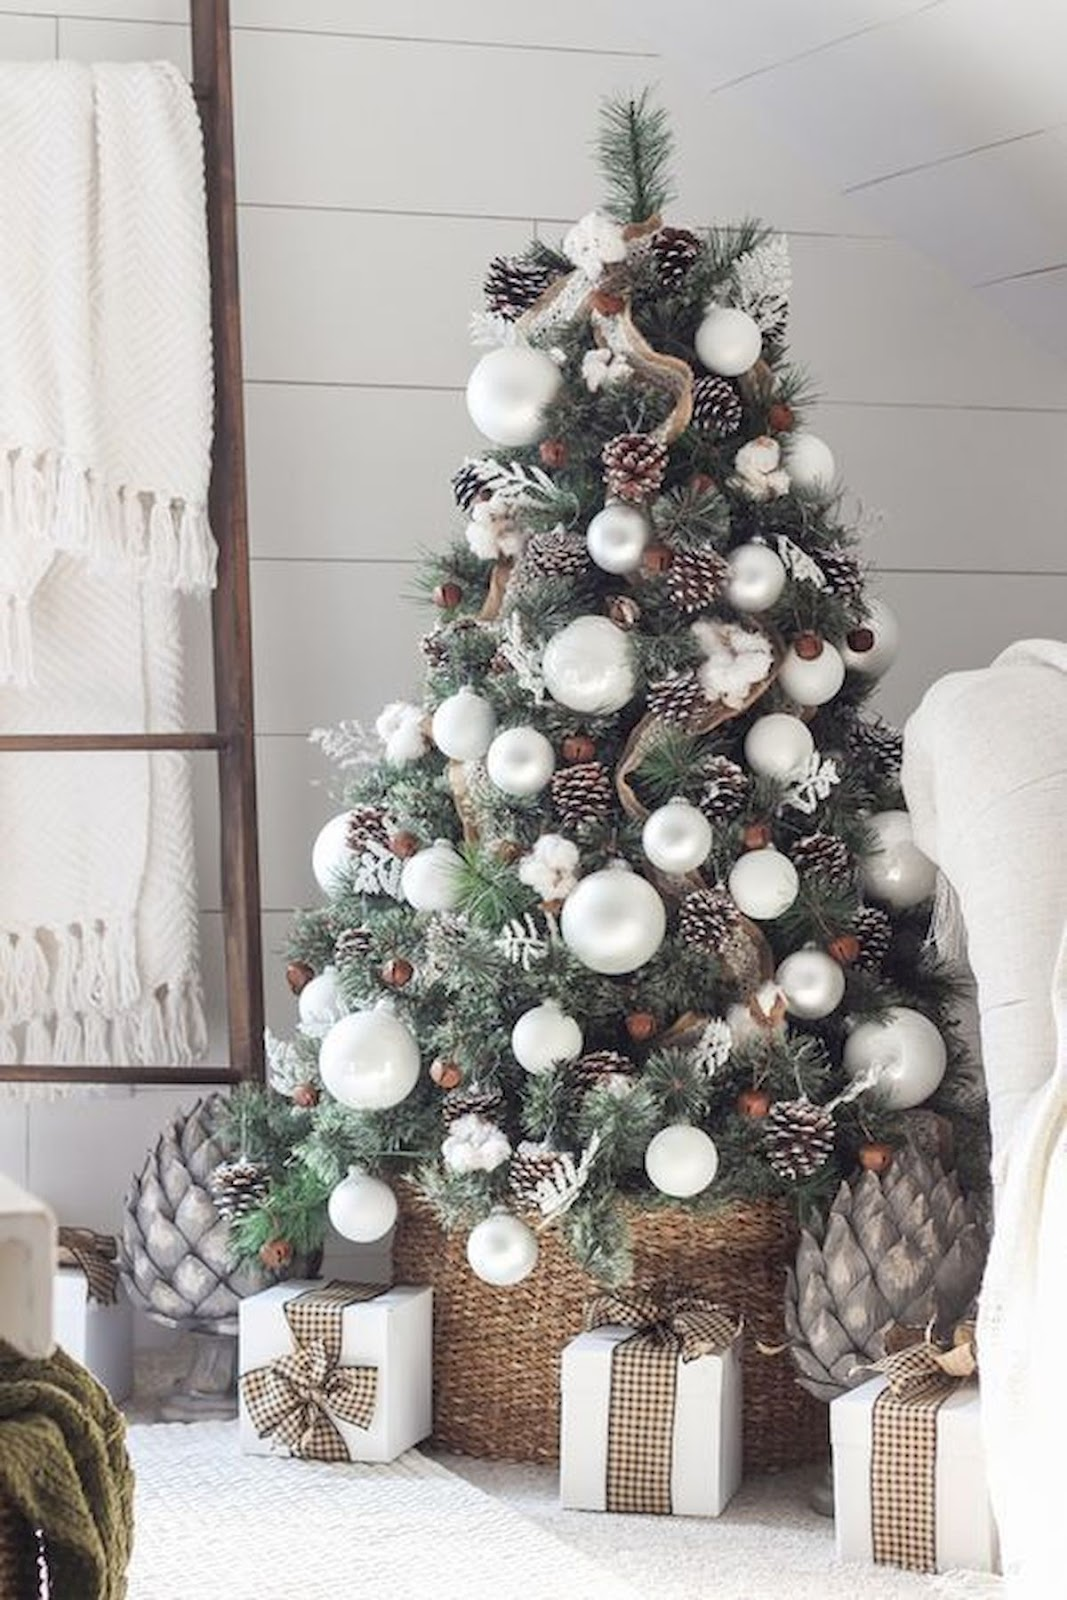 Christmas Tree Decoration Ideas to Bring Holiday Cheer to Your Home